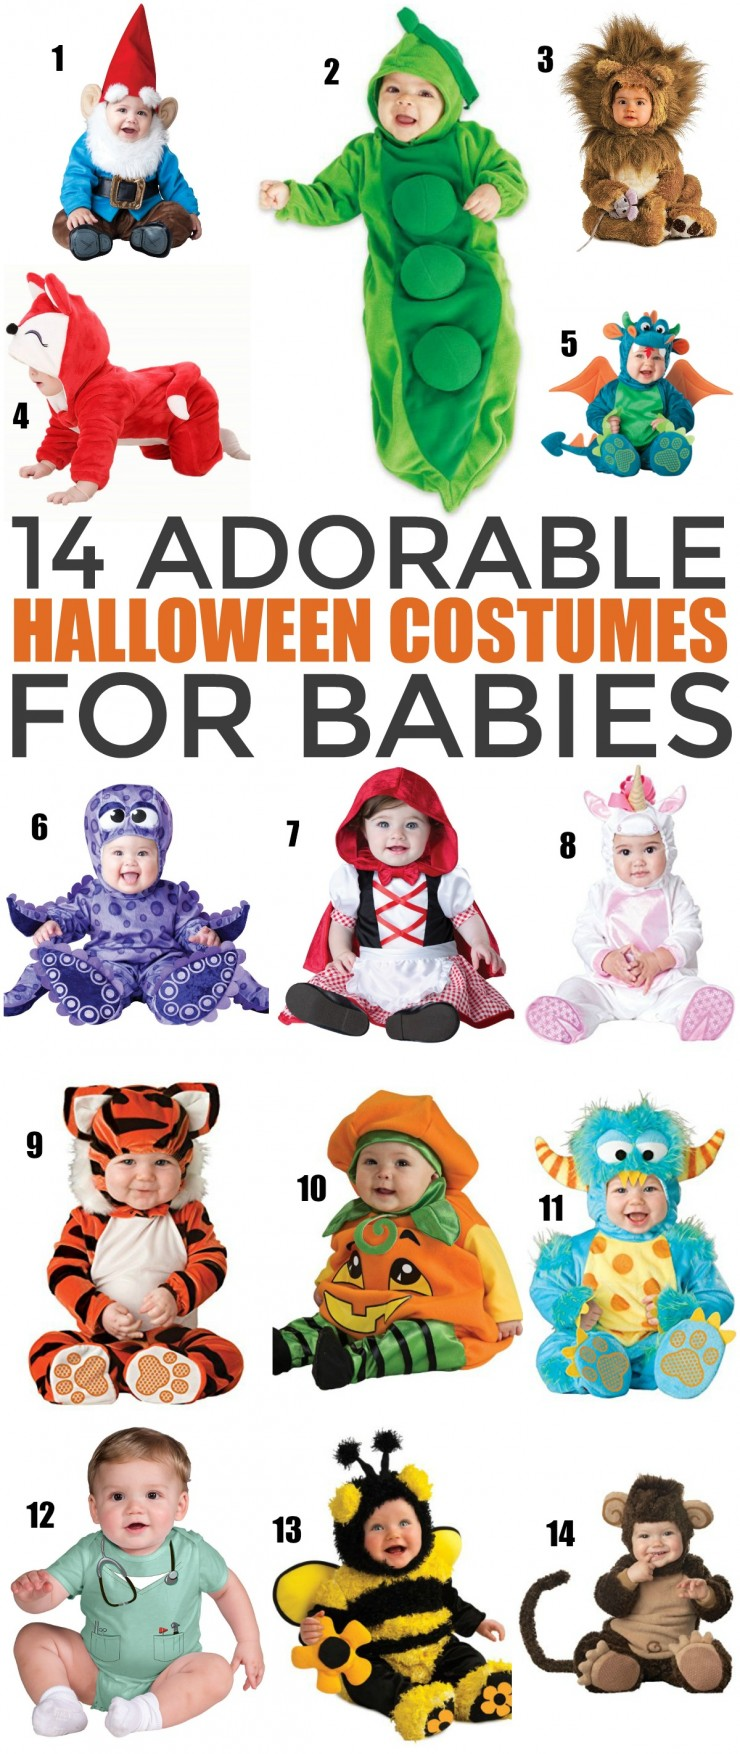 You won't want to leave baby out of the festivities, especially not with costumes as cute as these 14 totally adorable Halloween Costumes for Babies! These baby costume ideas are too cute for words.